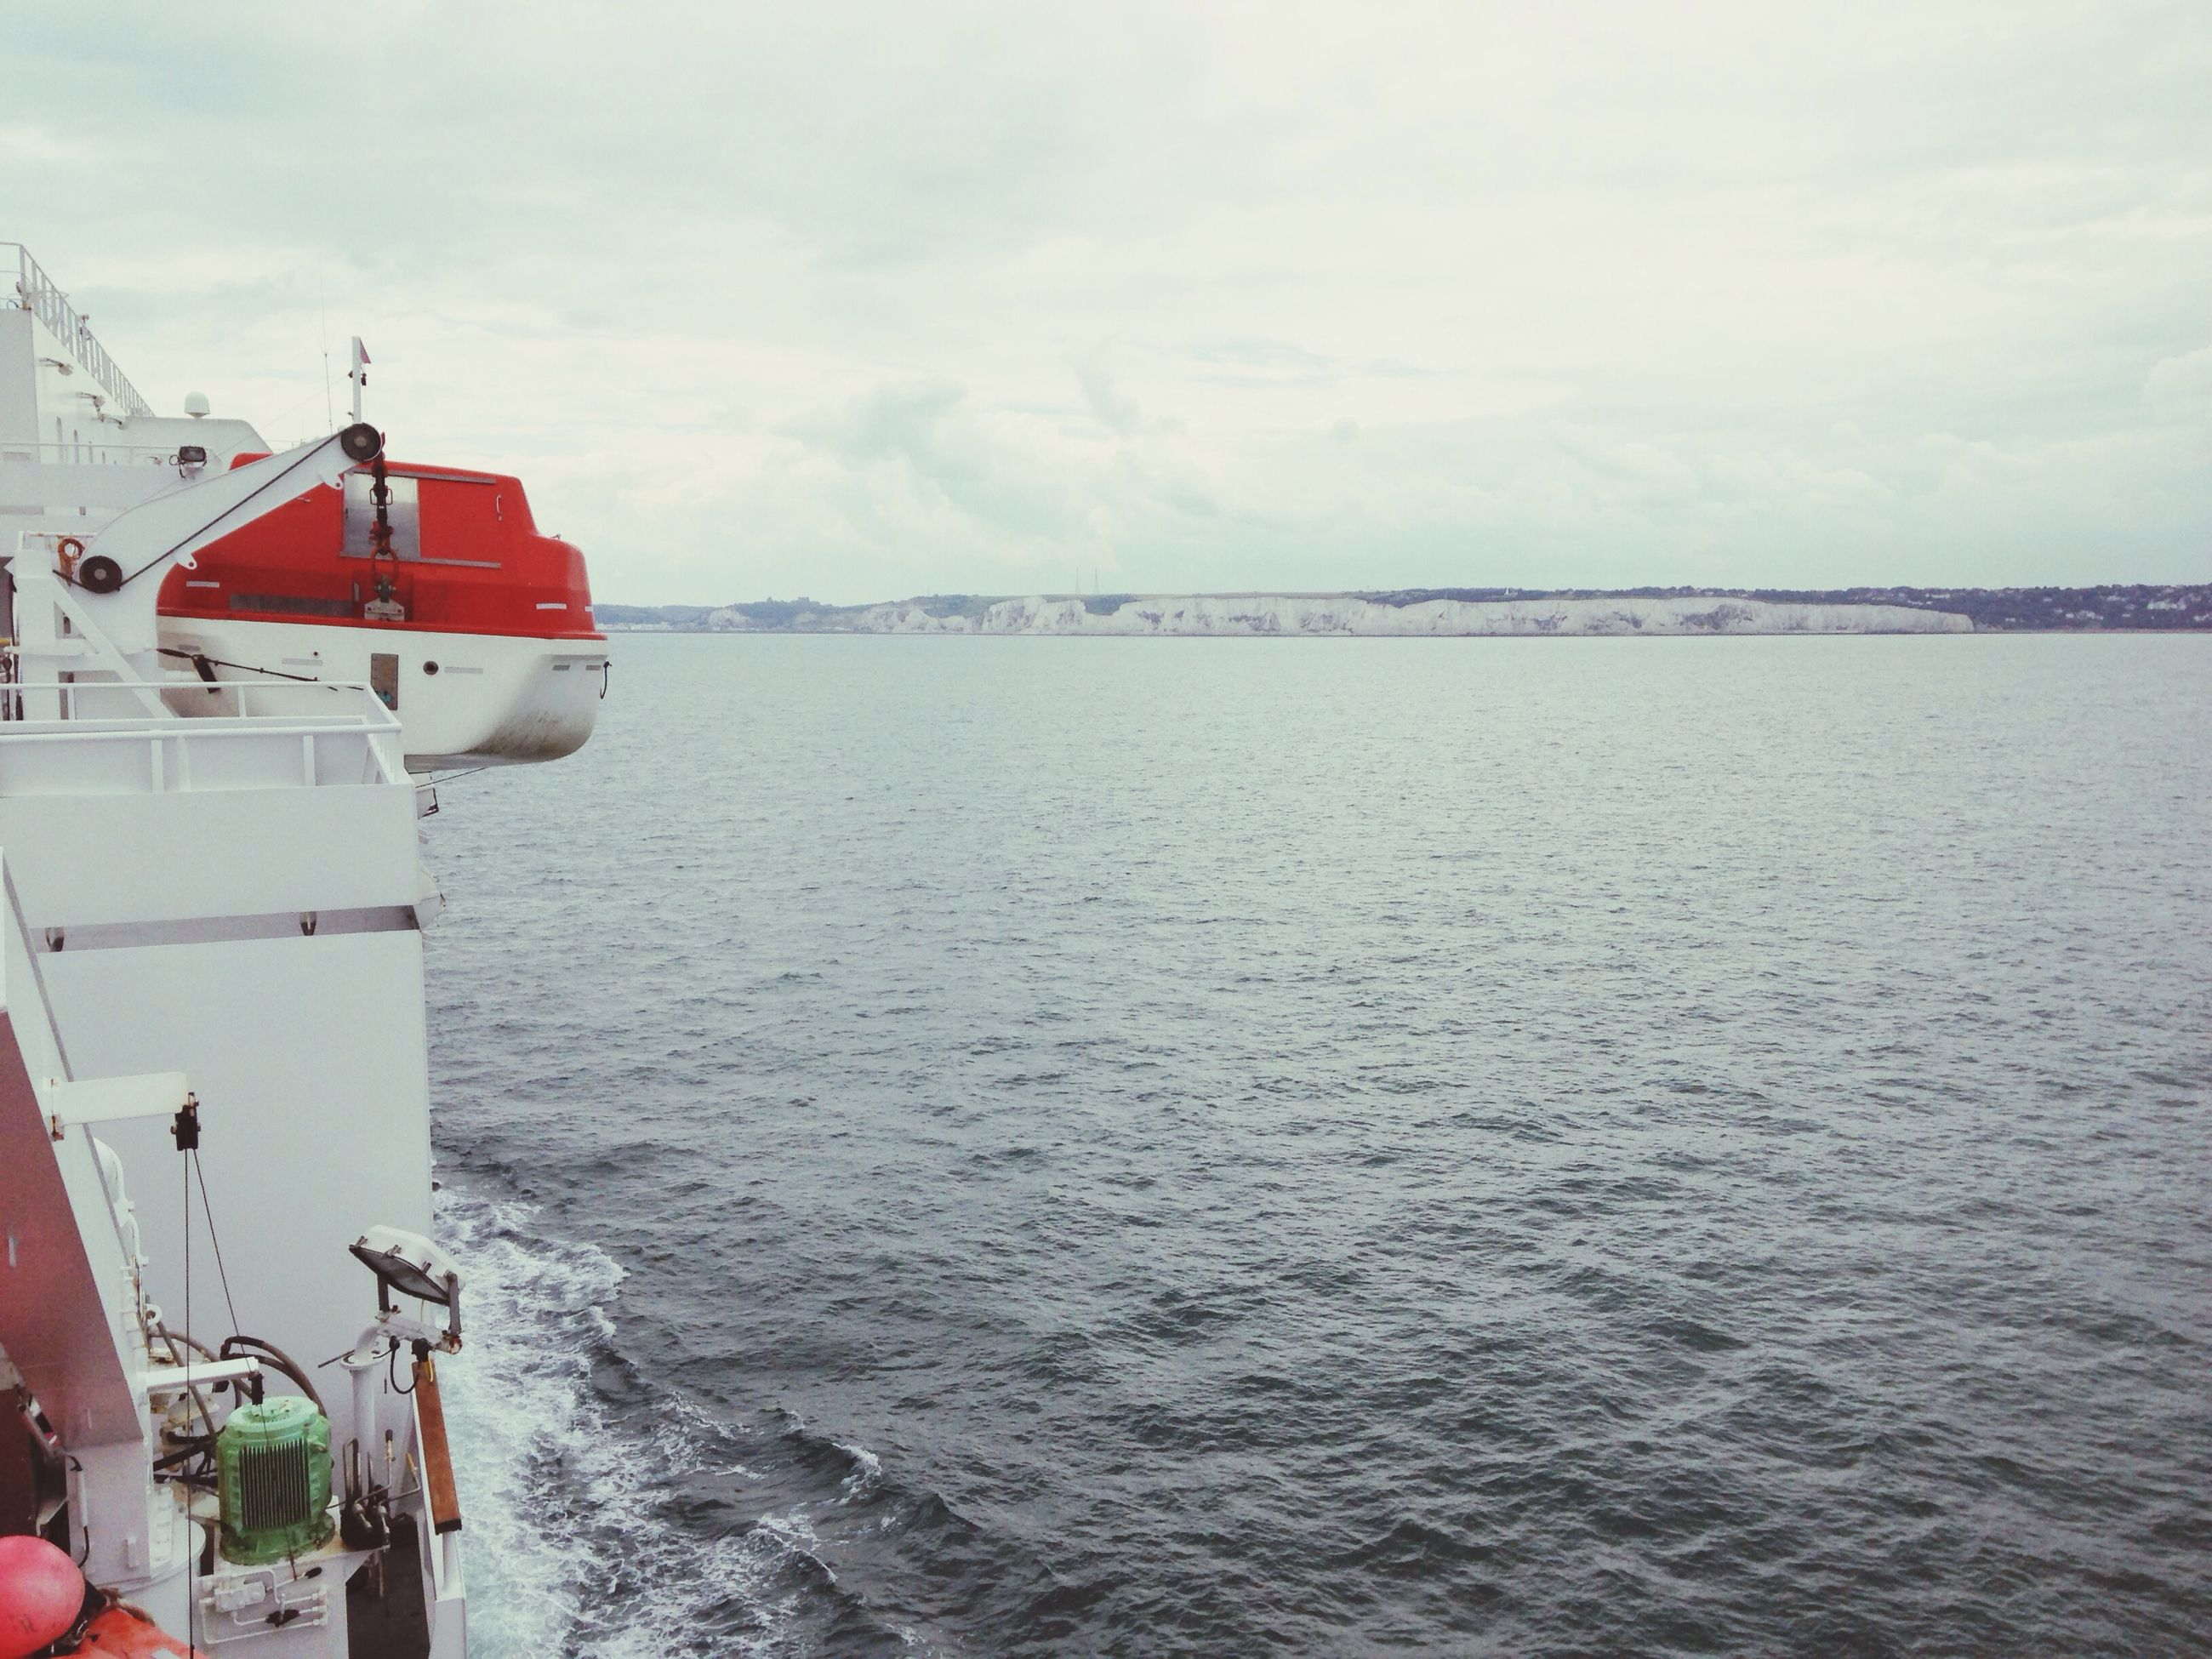 sea, water, sky, horizon over water, nautical vessel, cloud - sky, transportation, tranquil scene, waterfront, tranquility, nature, scenics, boat, beauty in nature, mode of transport, built structure, rippled, cloud, day, cloudy